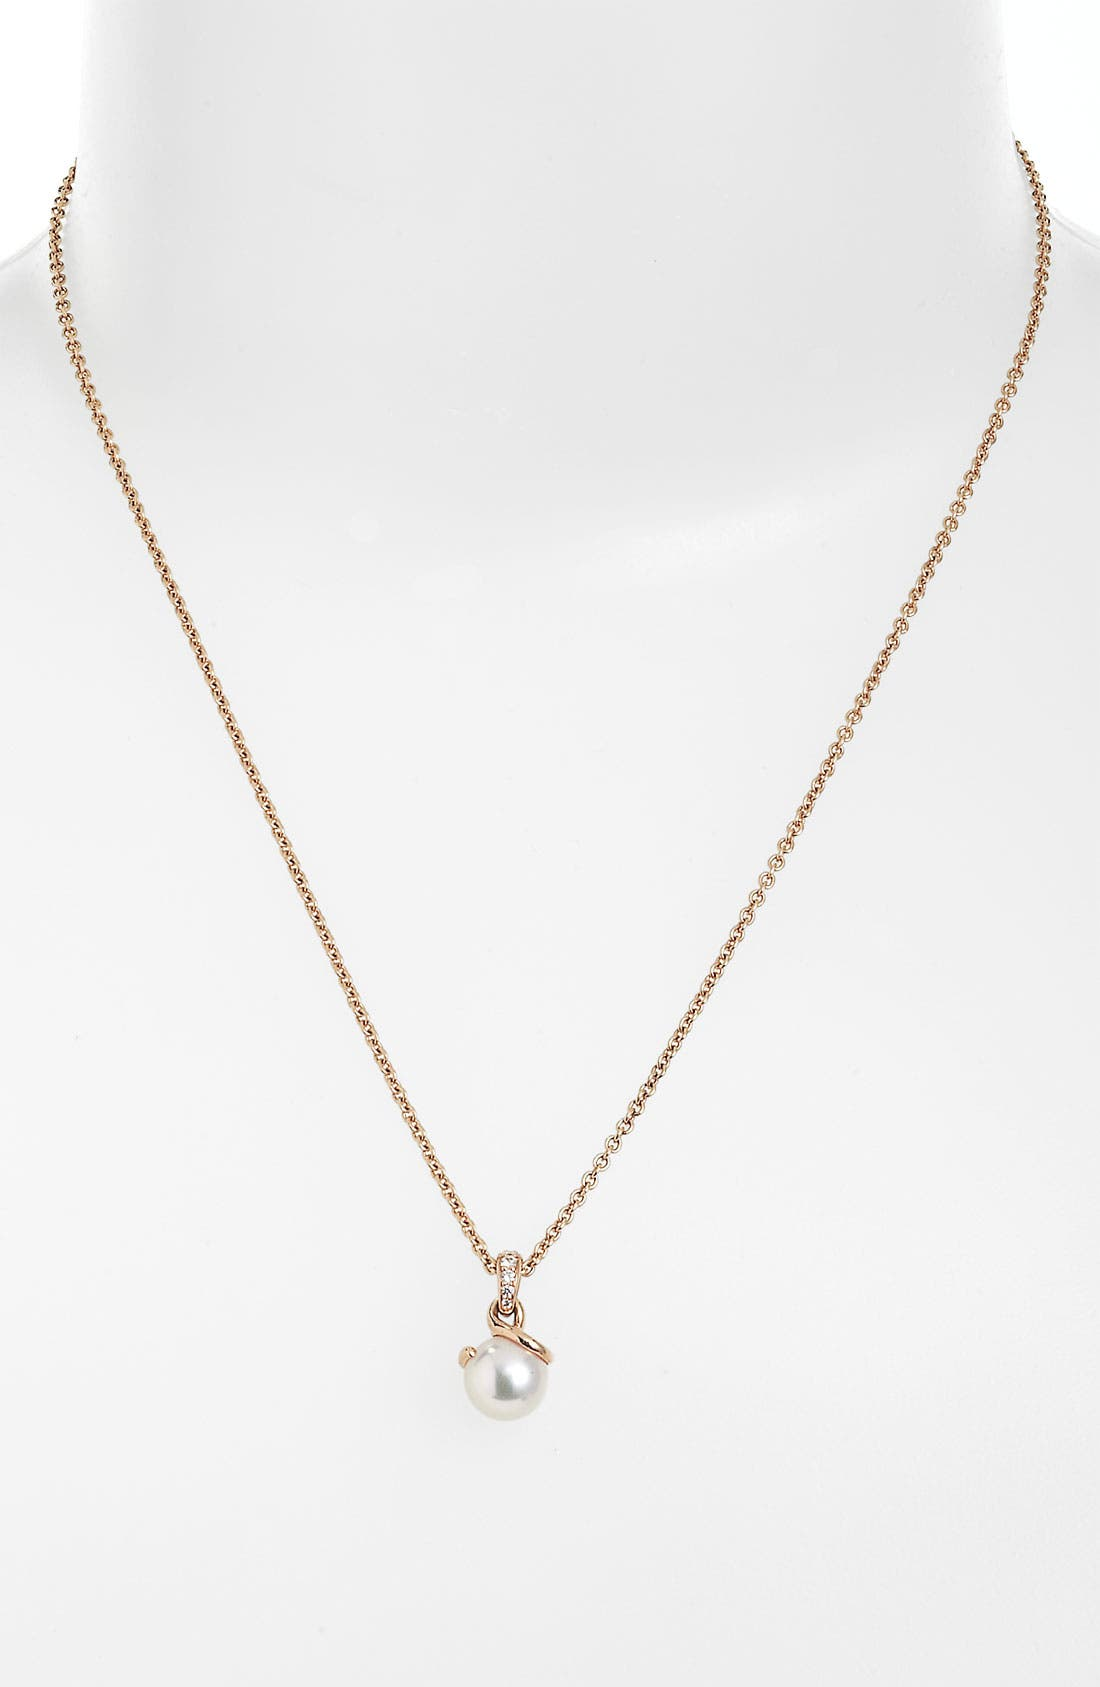 Alternate Image 1 Selected - Mikimoto Akoya Cultured Pearl & Diamond Pendant Necklace